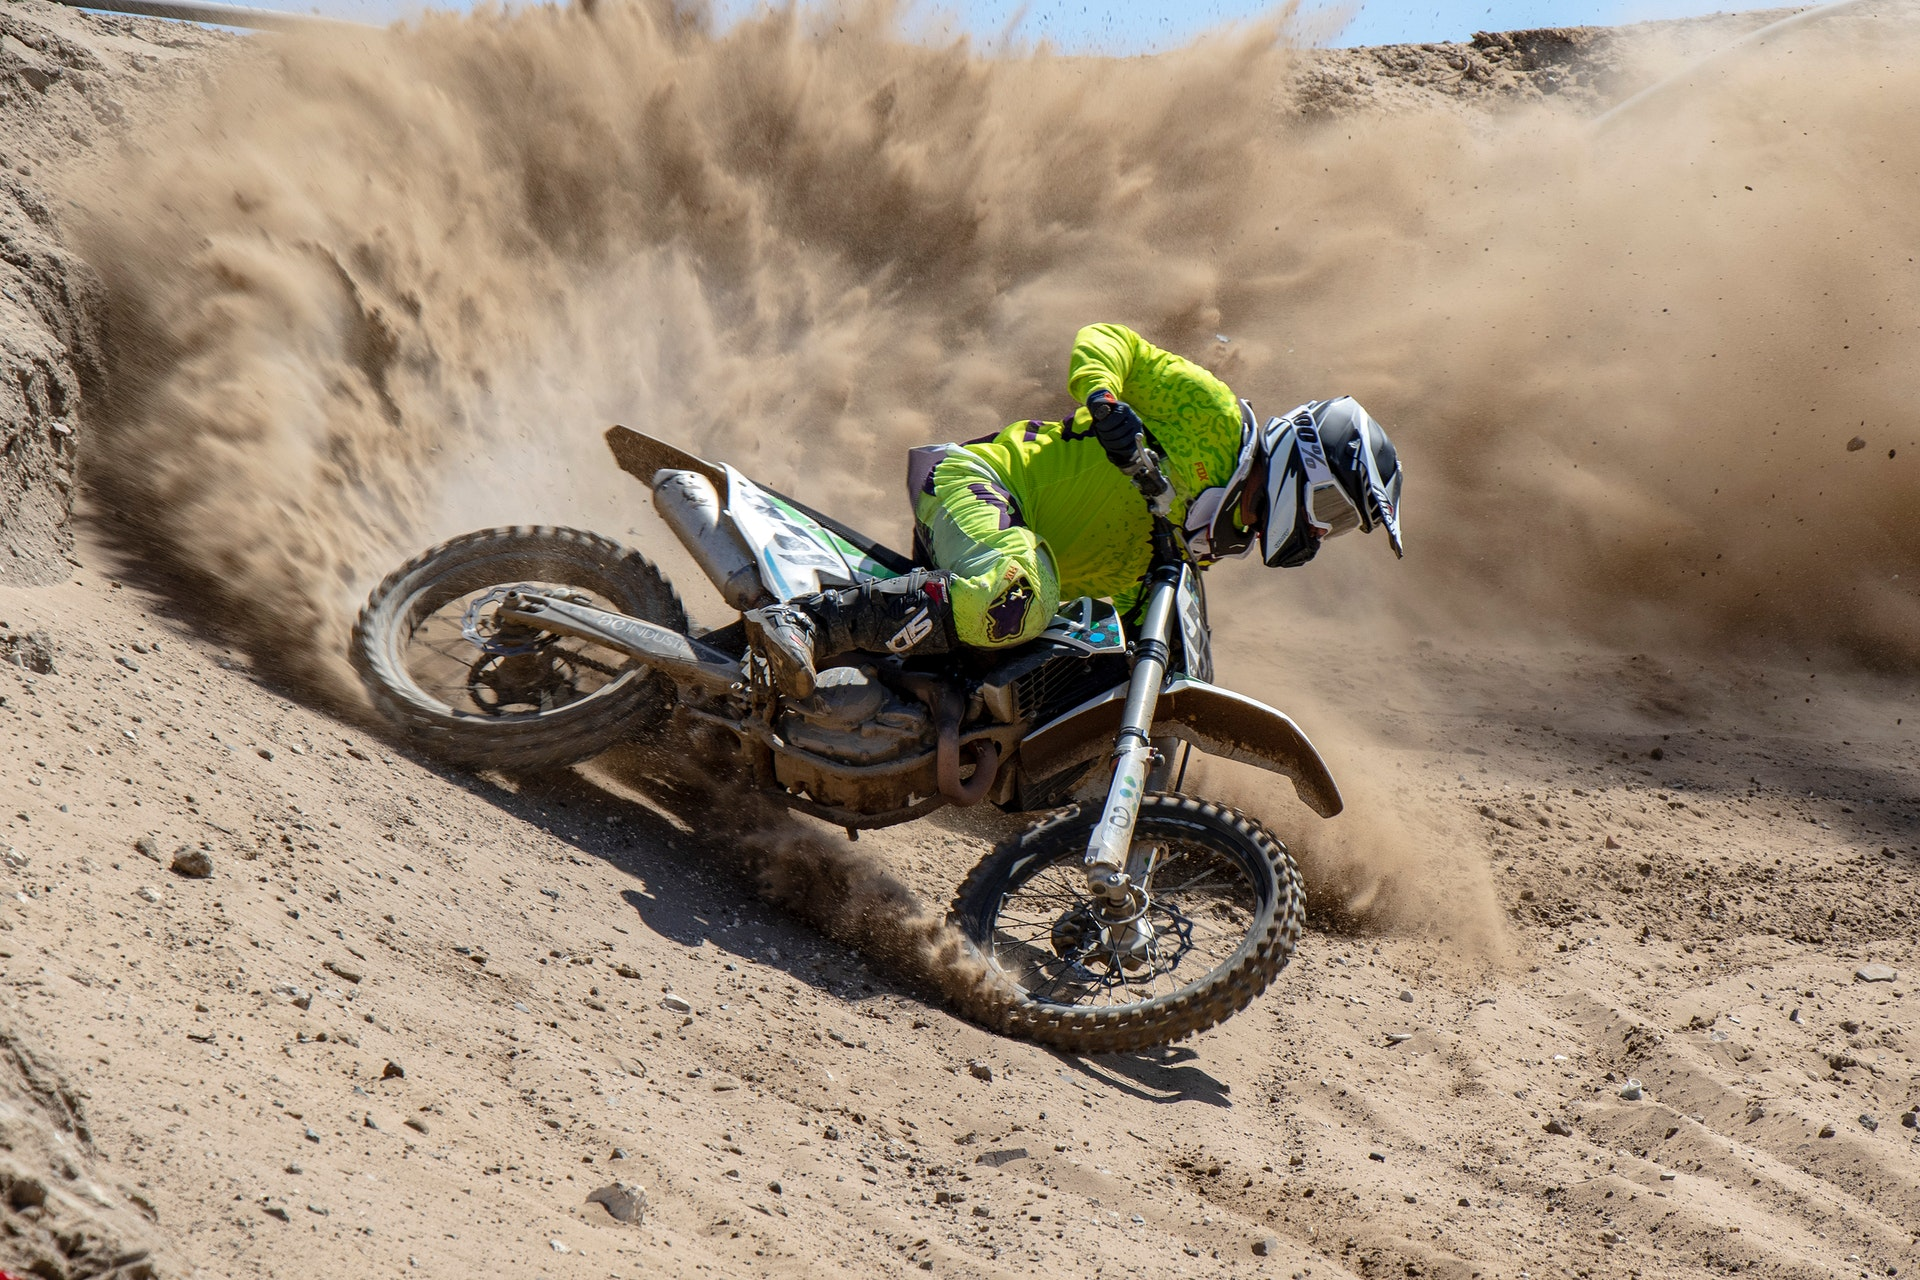 The Best Dirt Bikes & Dual Sports Under $5,000